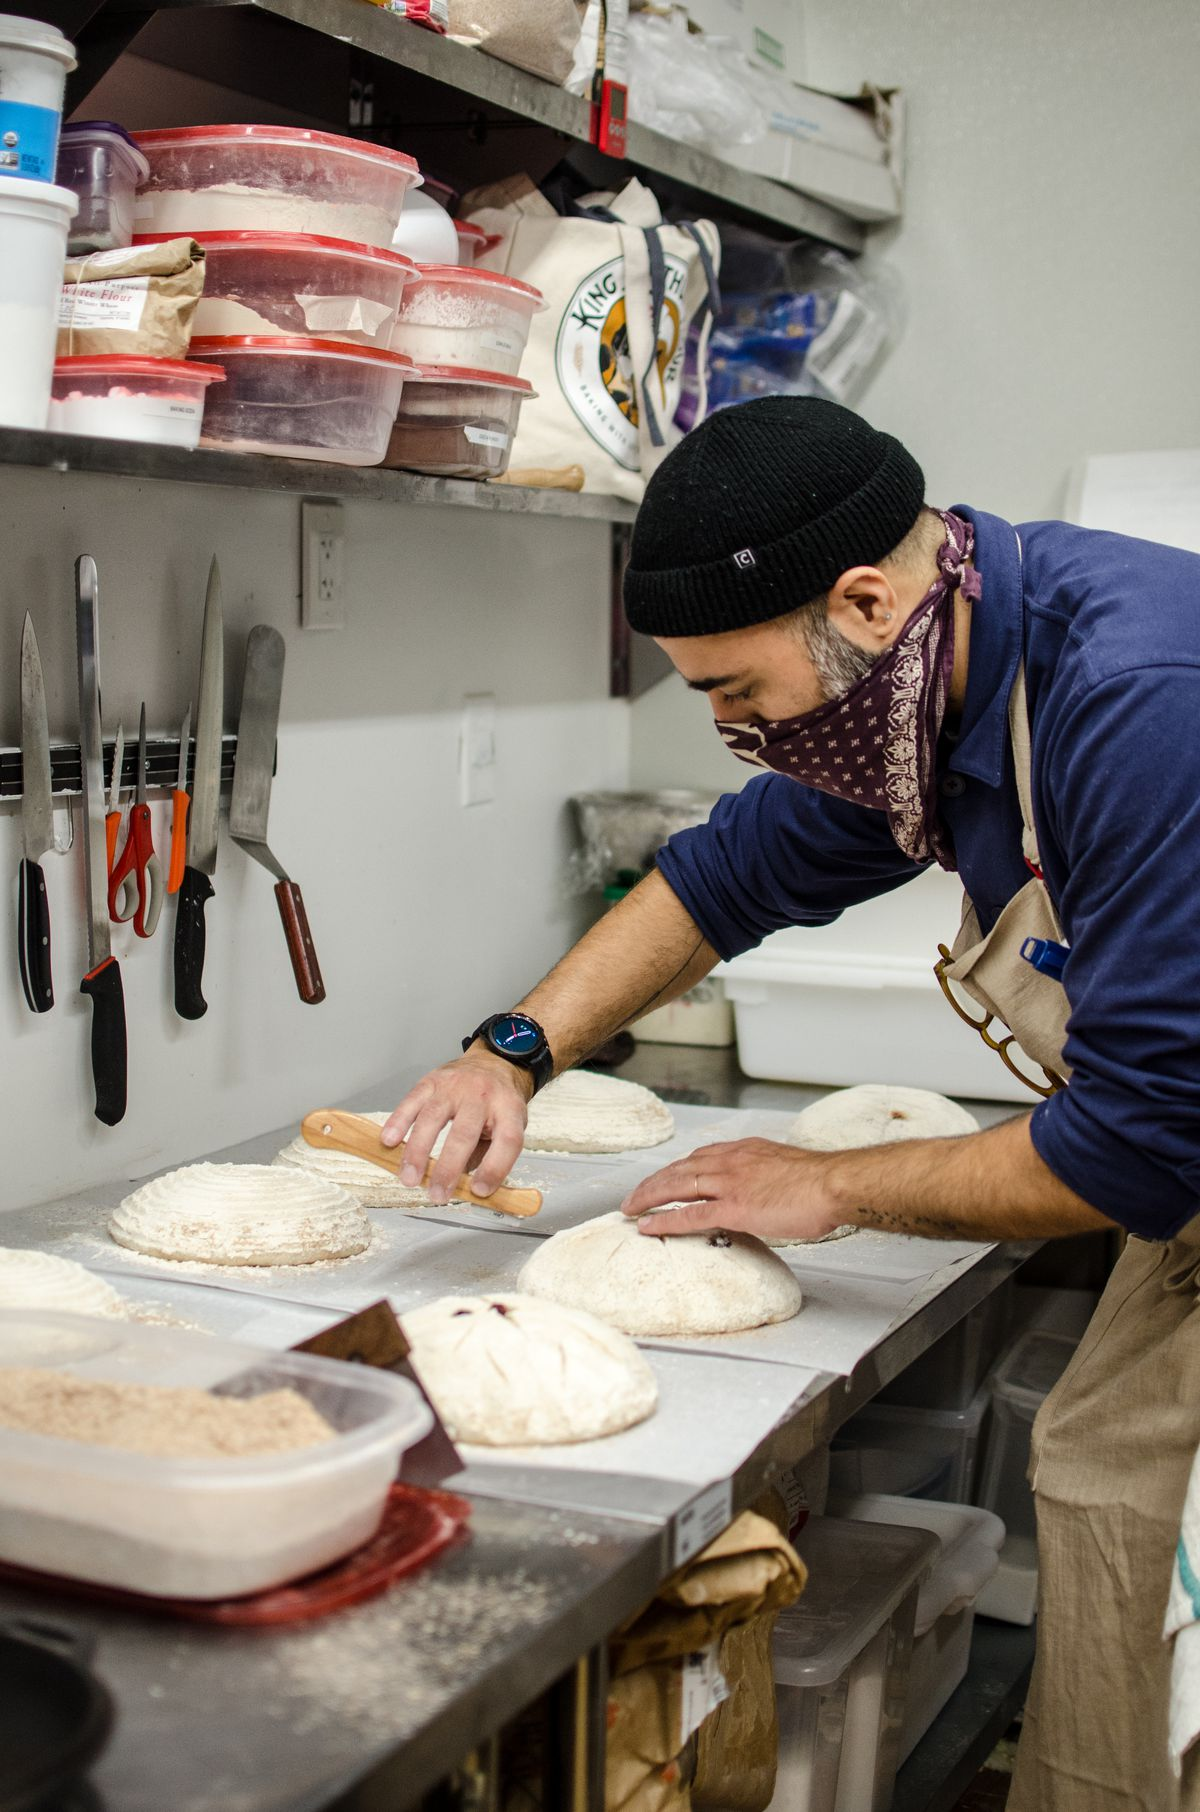 A man bends over a countertop in a kitchen, scoring uncooked round loaves of bread. He wears a handkerchief over his face due to COVID restrictions.